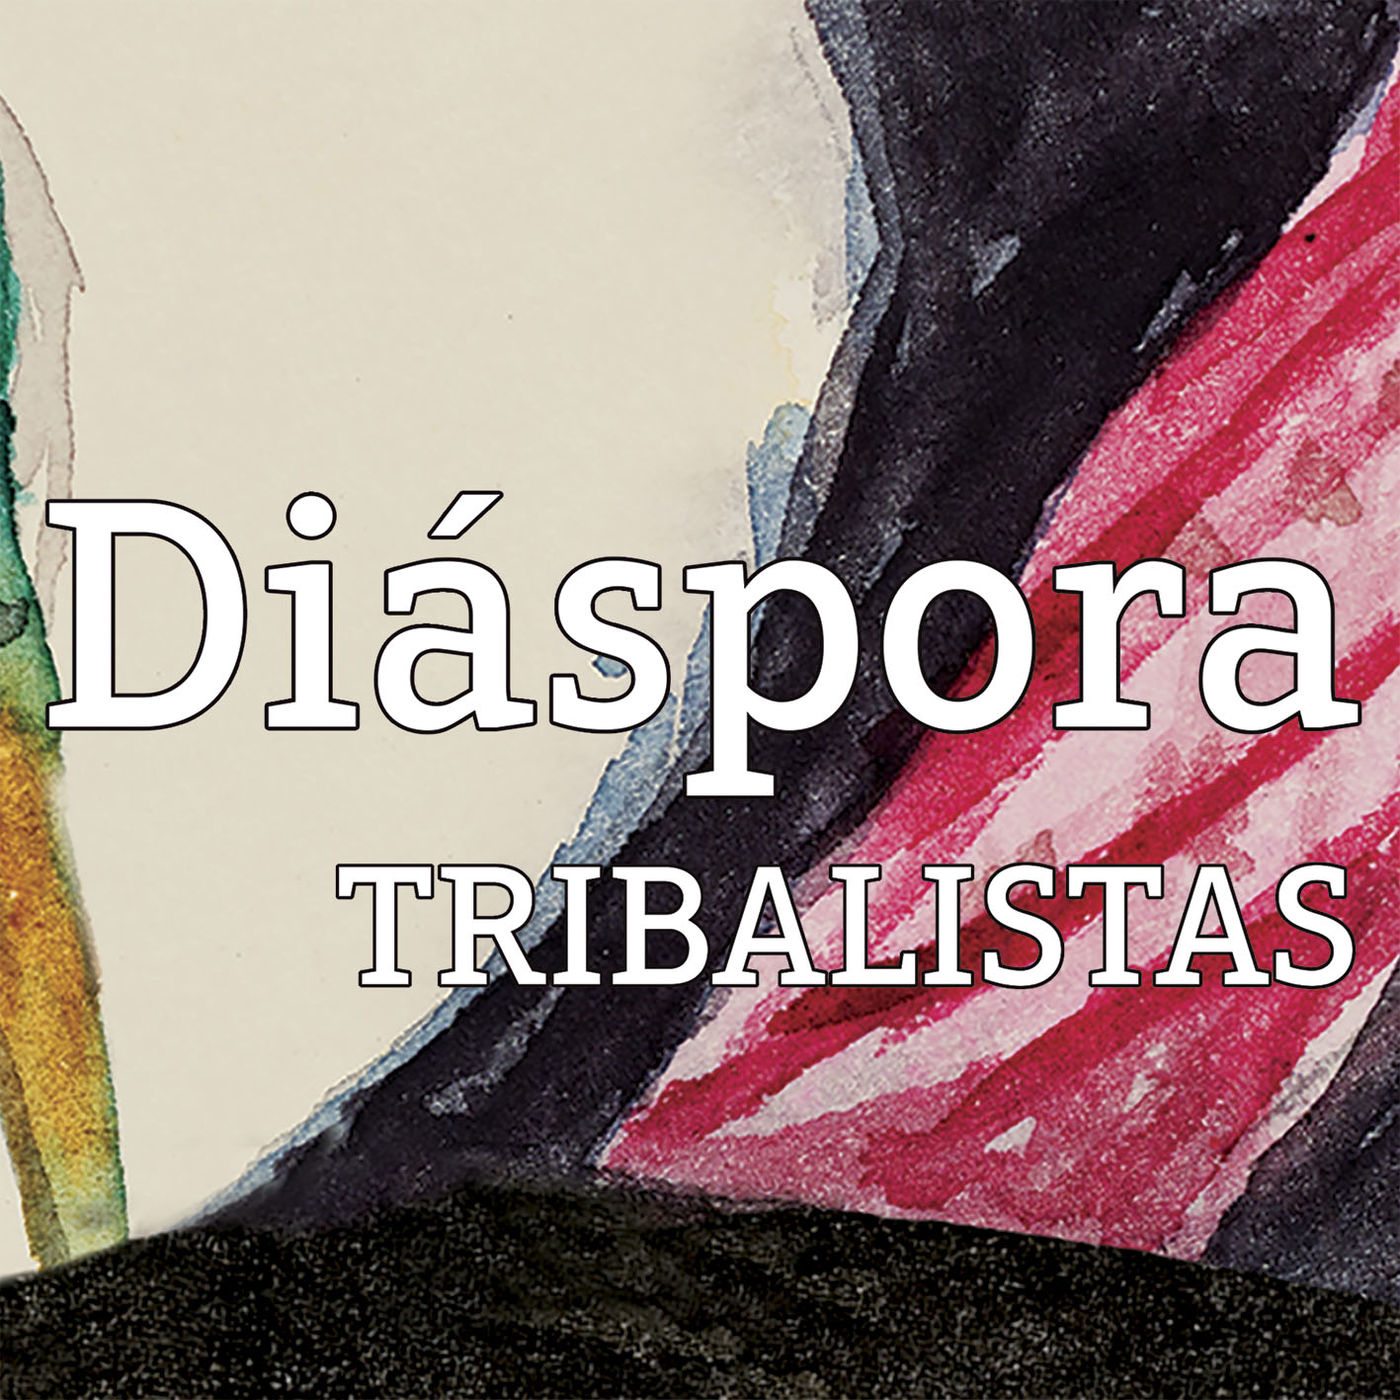 Tribalistas - Diáspora (Single)